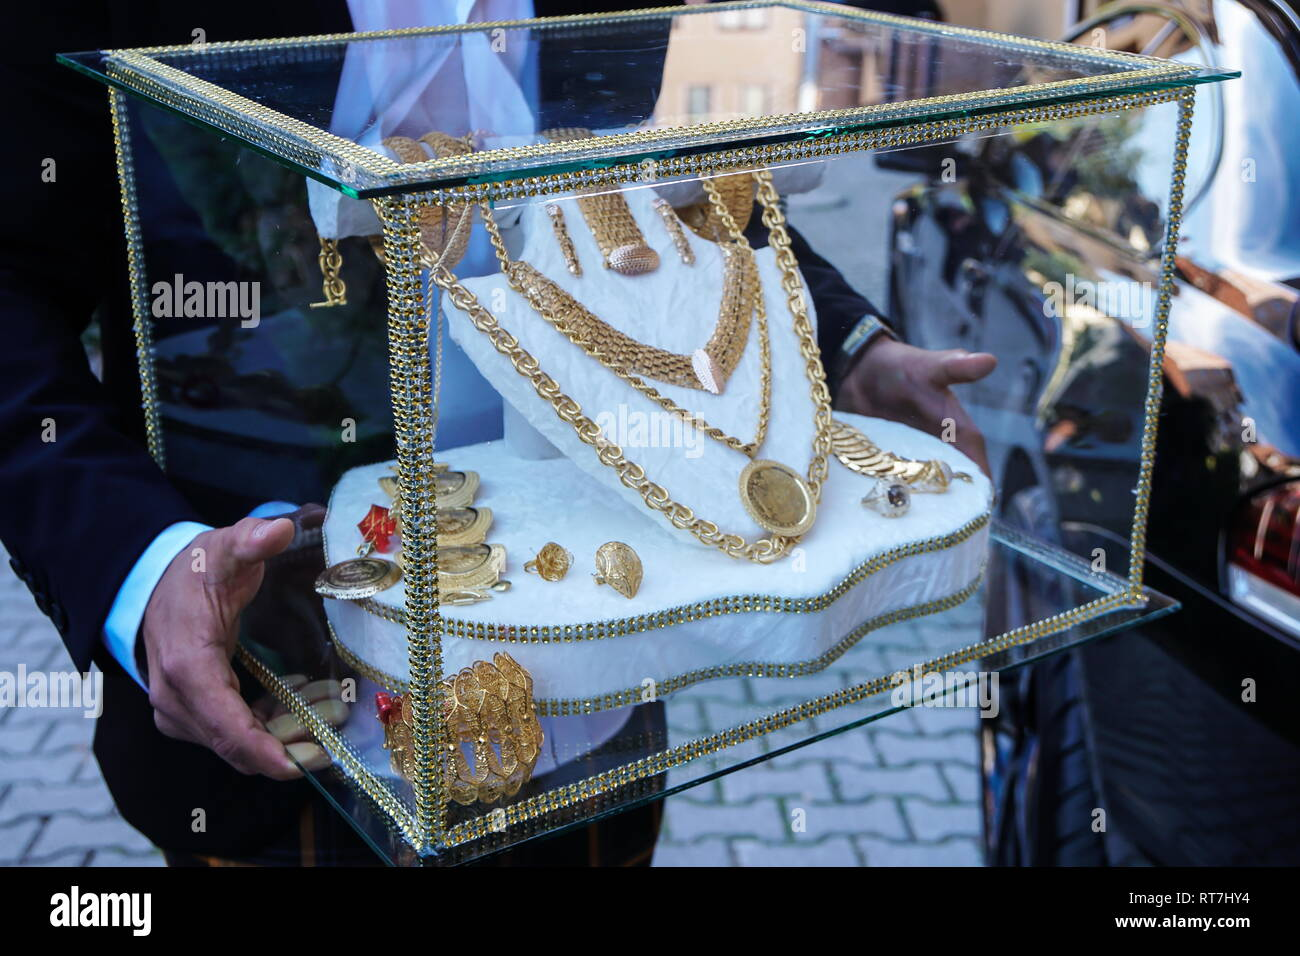 Gold jewelry in the glass box for Muslim bride - Stock Image